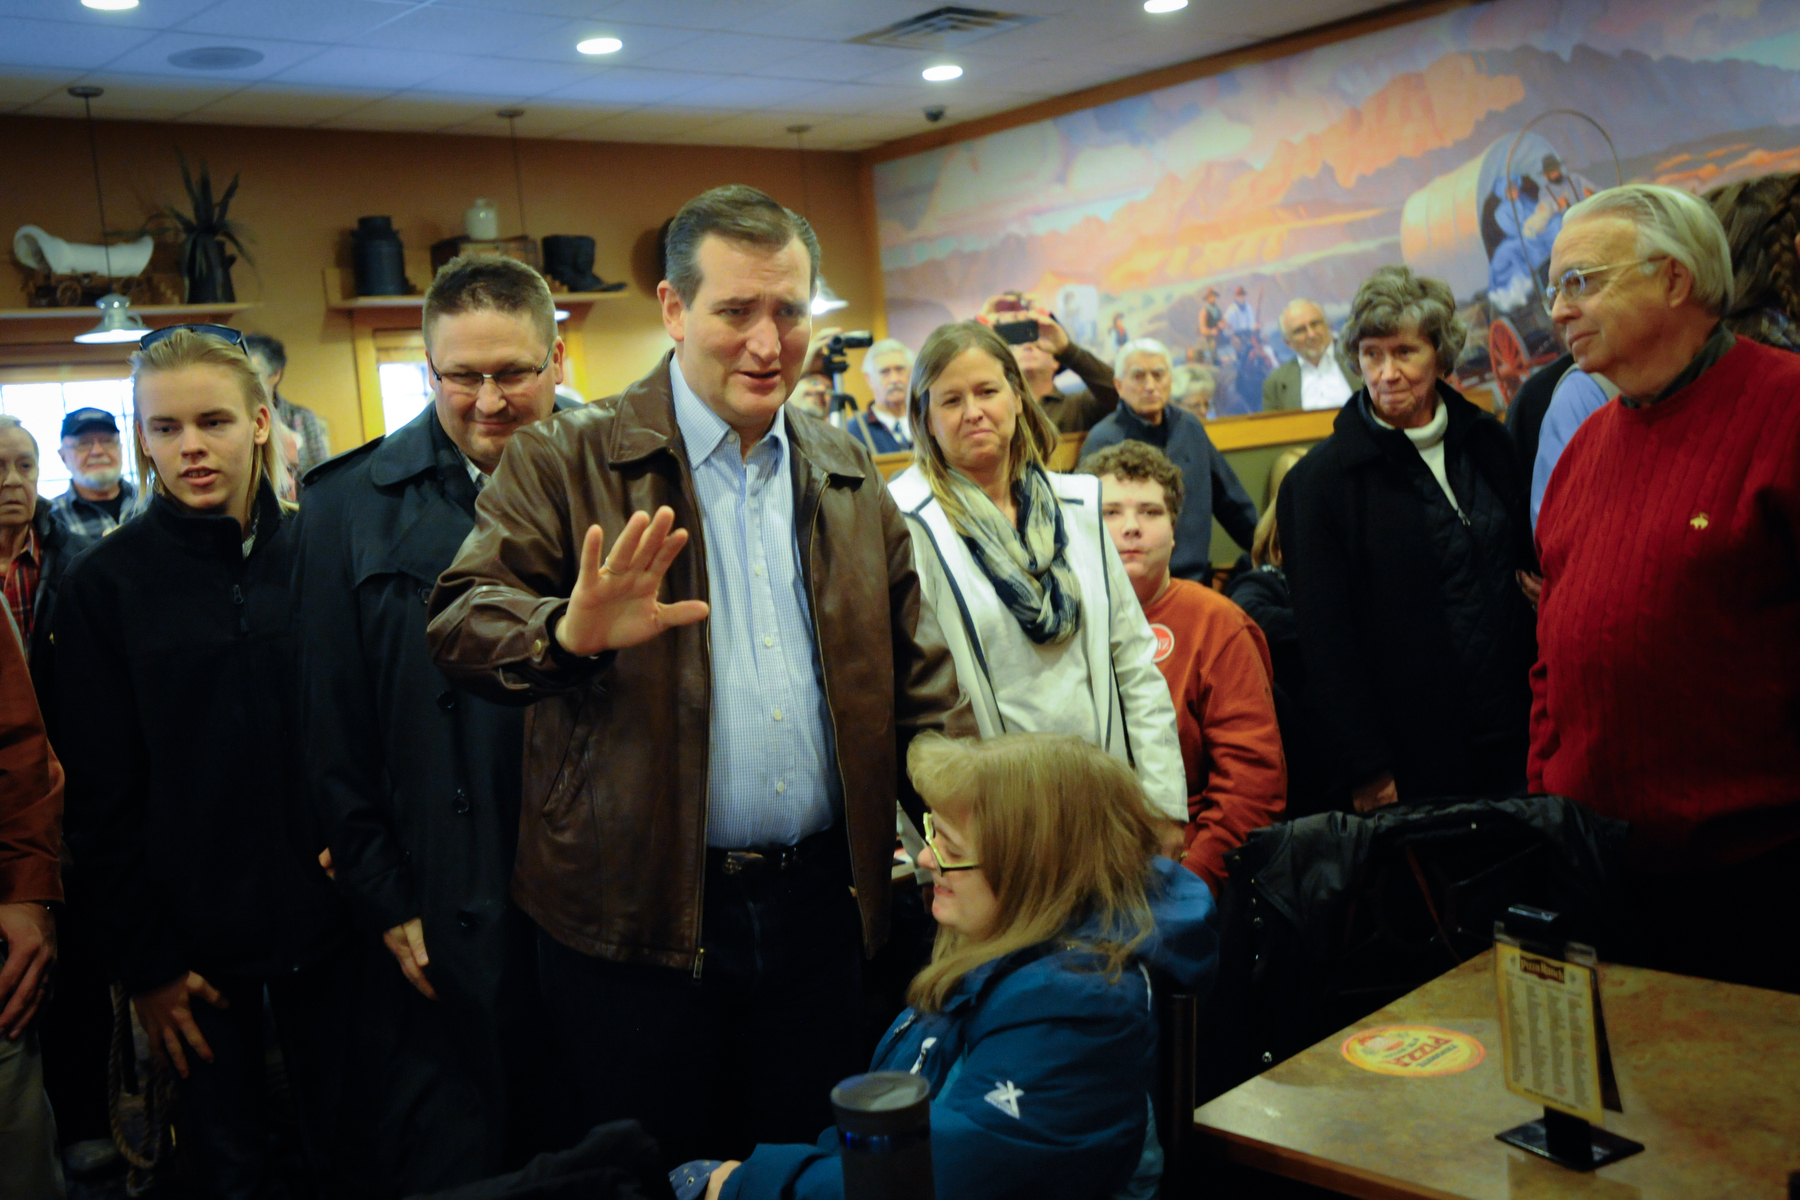 U.S. Republican presidential candidate Ted Cruz arrives at a campaign stop at a Pizza Ranch restaurant in Newton, Iowa November 29, 2015. REUTERS/Mark Kauzlarich